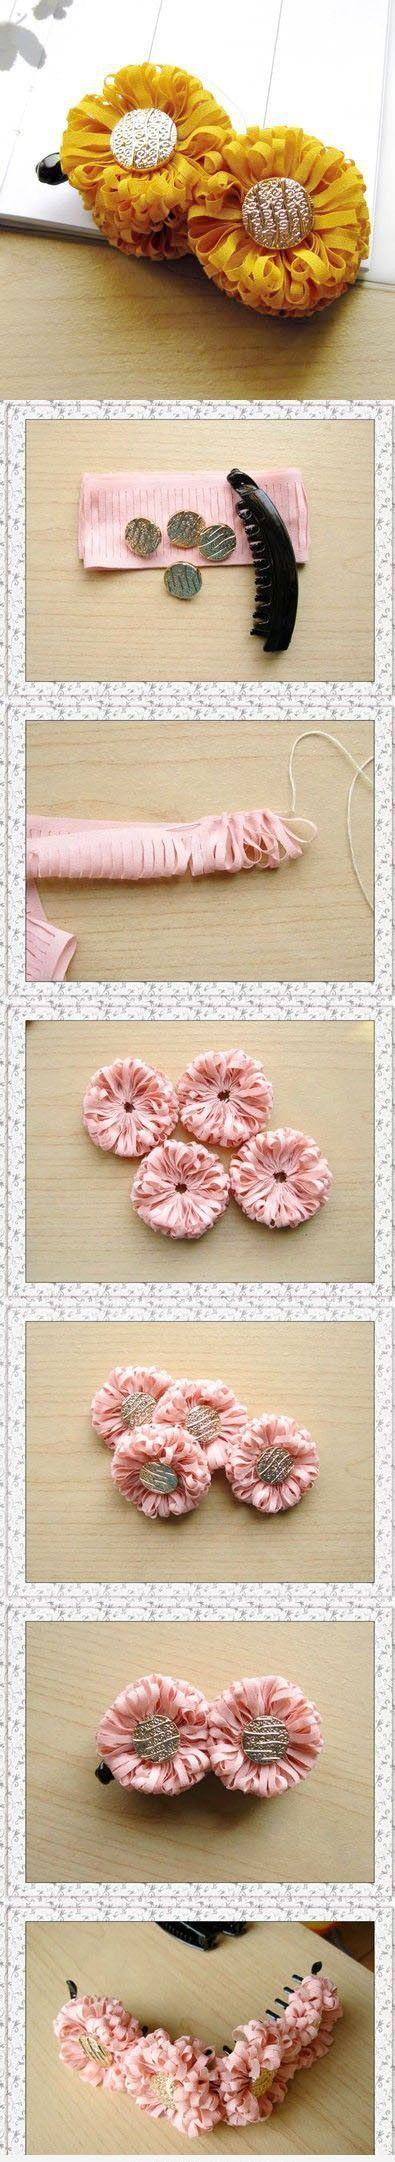 DIY: Make the flowers from a favorite print, and center each one with a button. Then use them to trim clothing, headbands, hats, or something else.